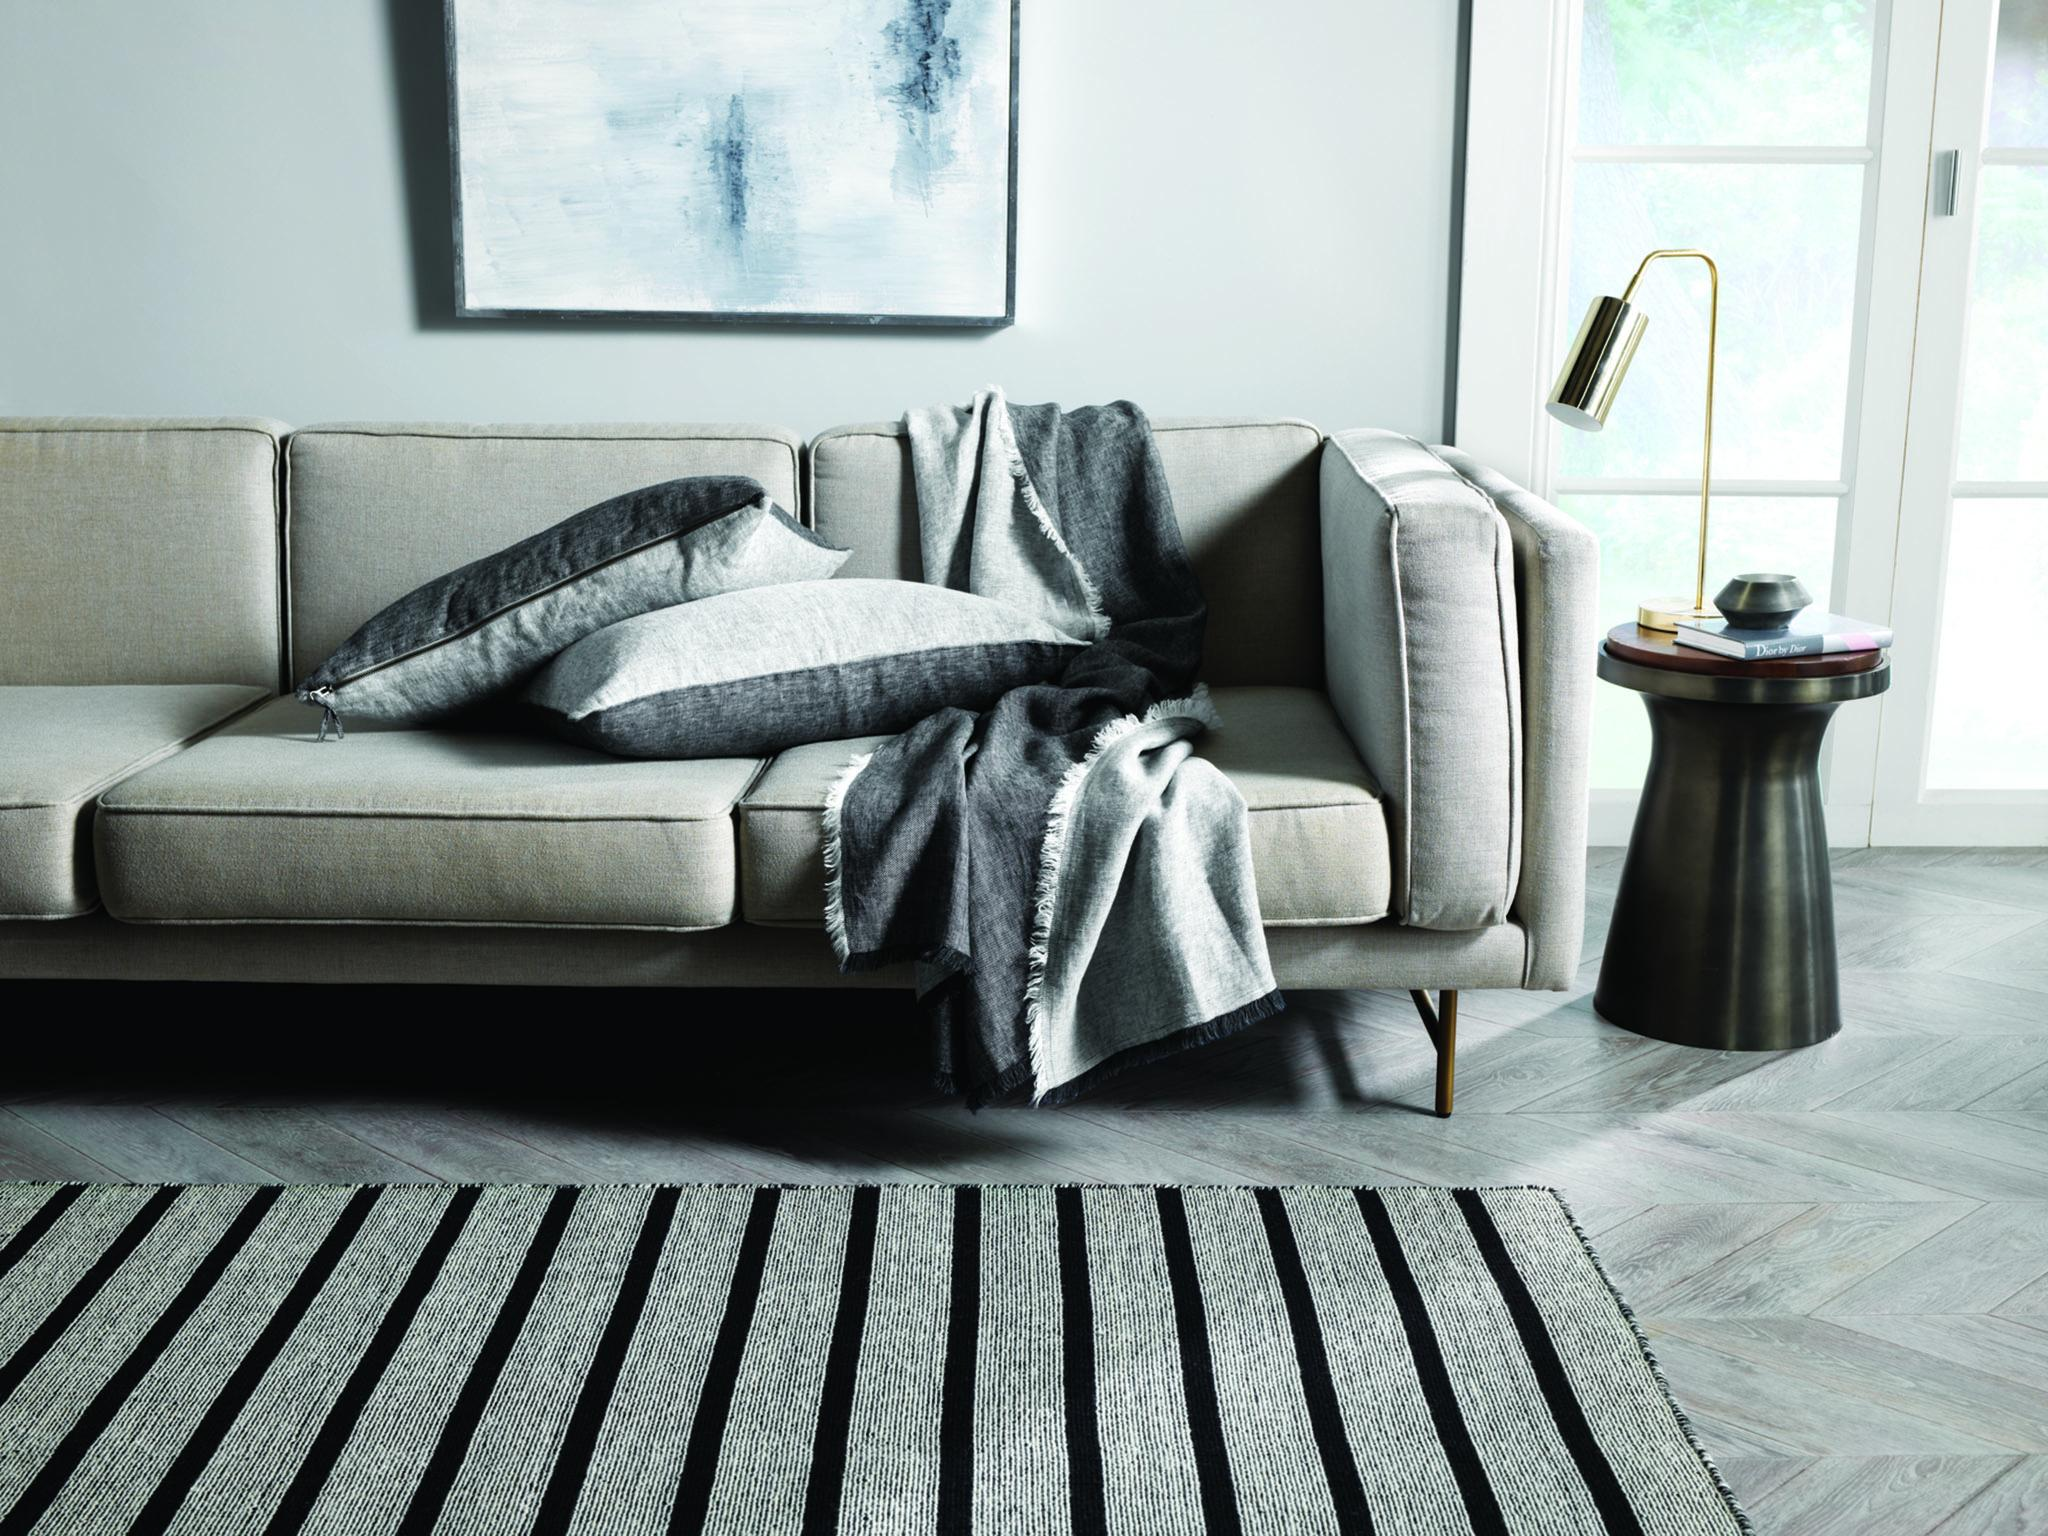 Interio Sofa Erfahrungen The 50 Best Interiors Websites The Independent